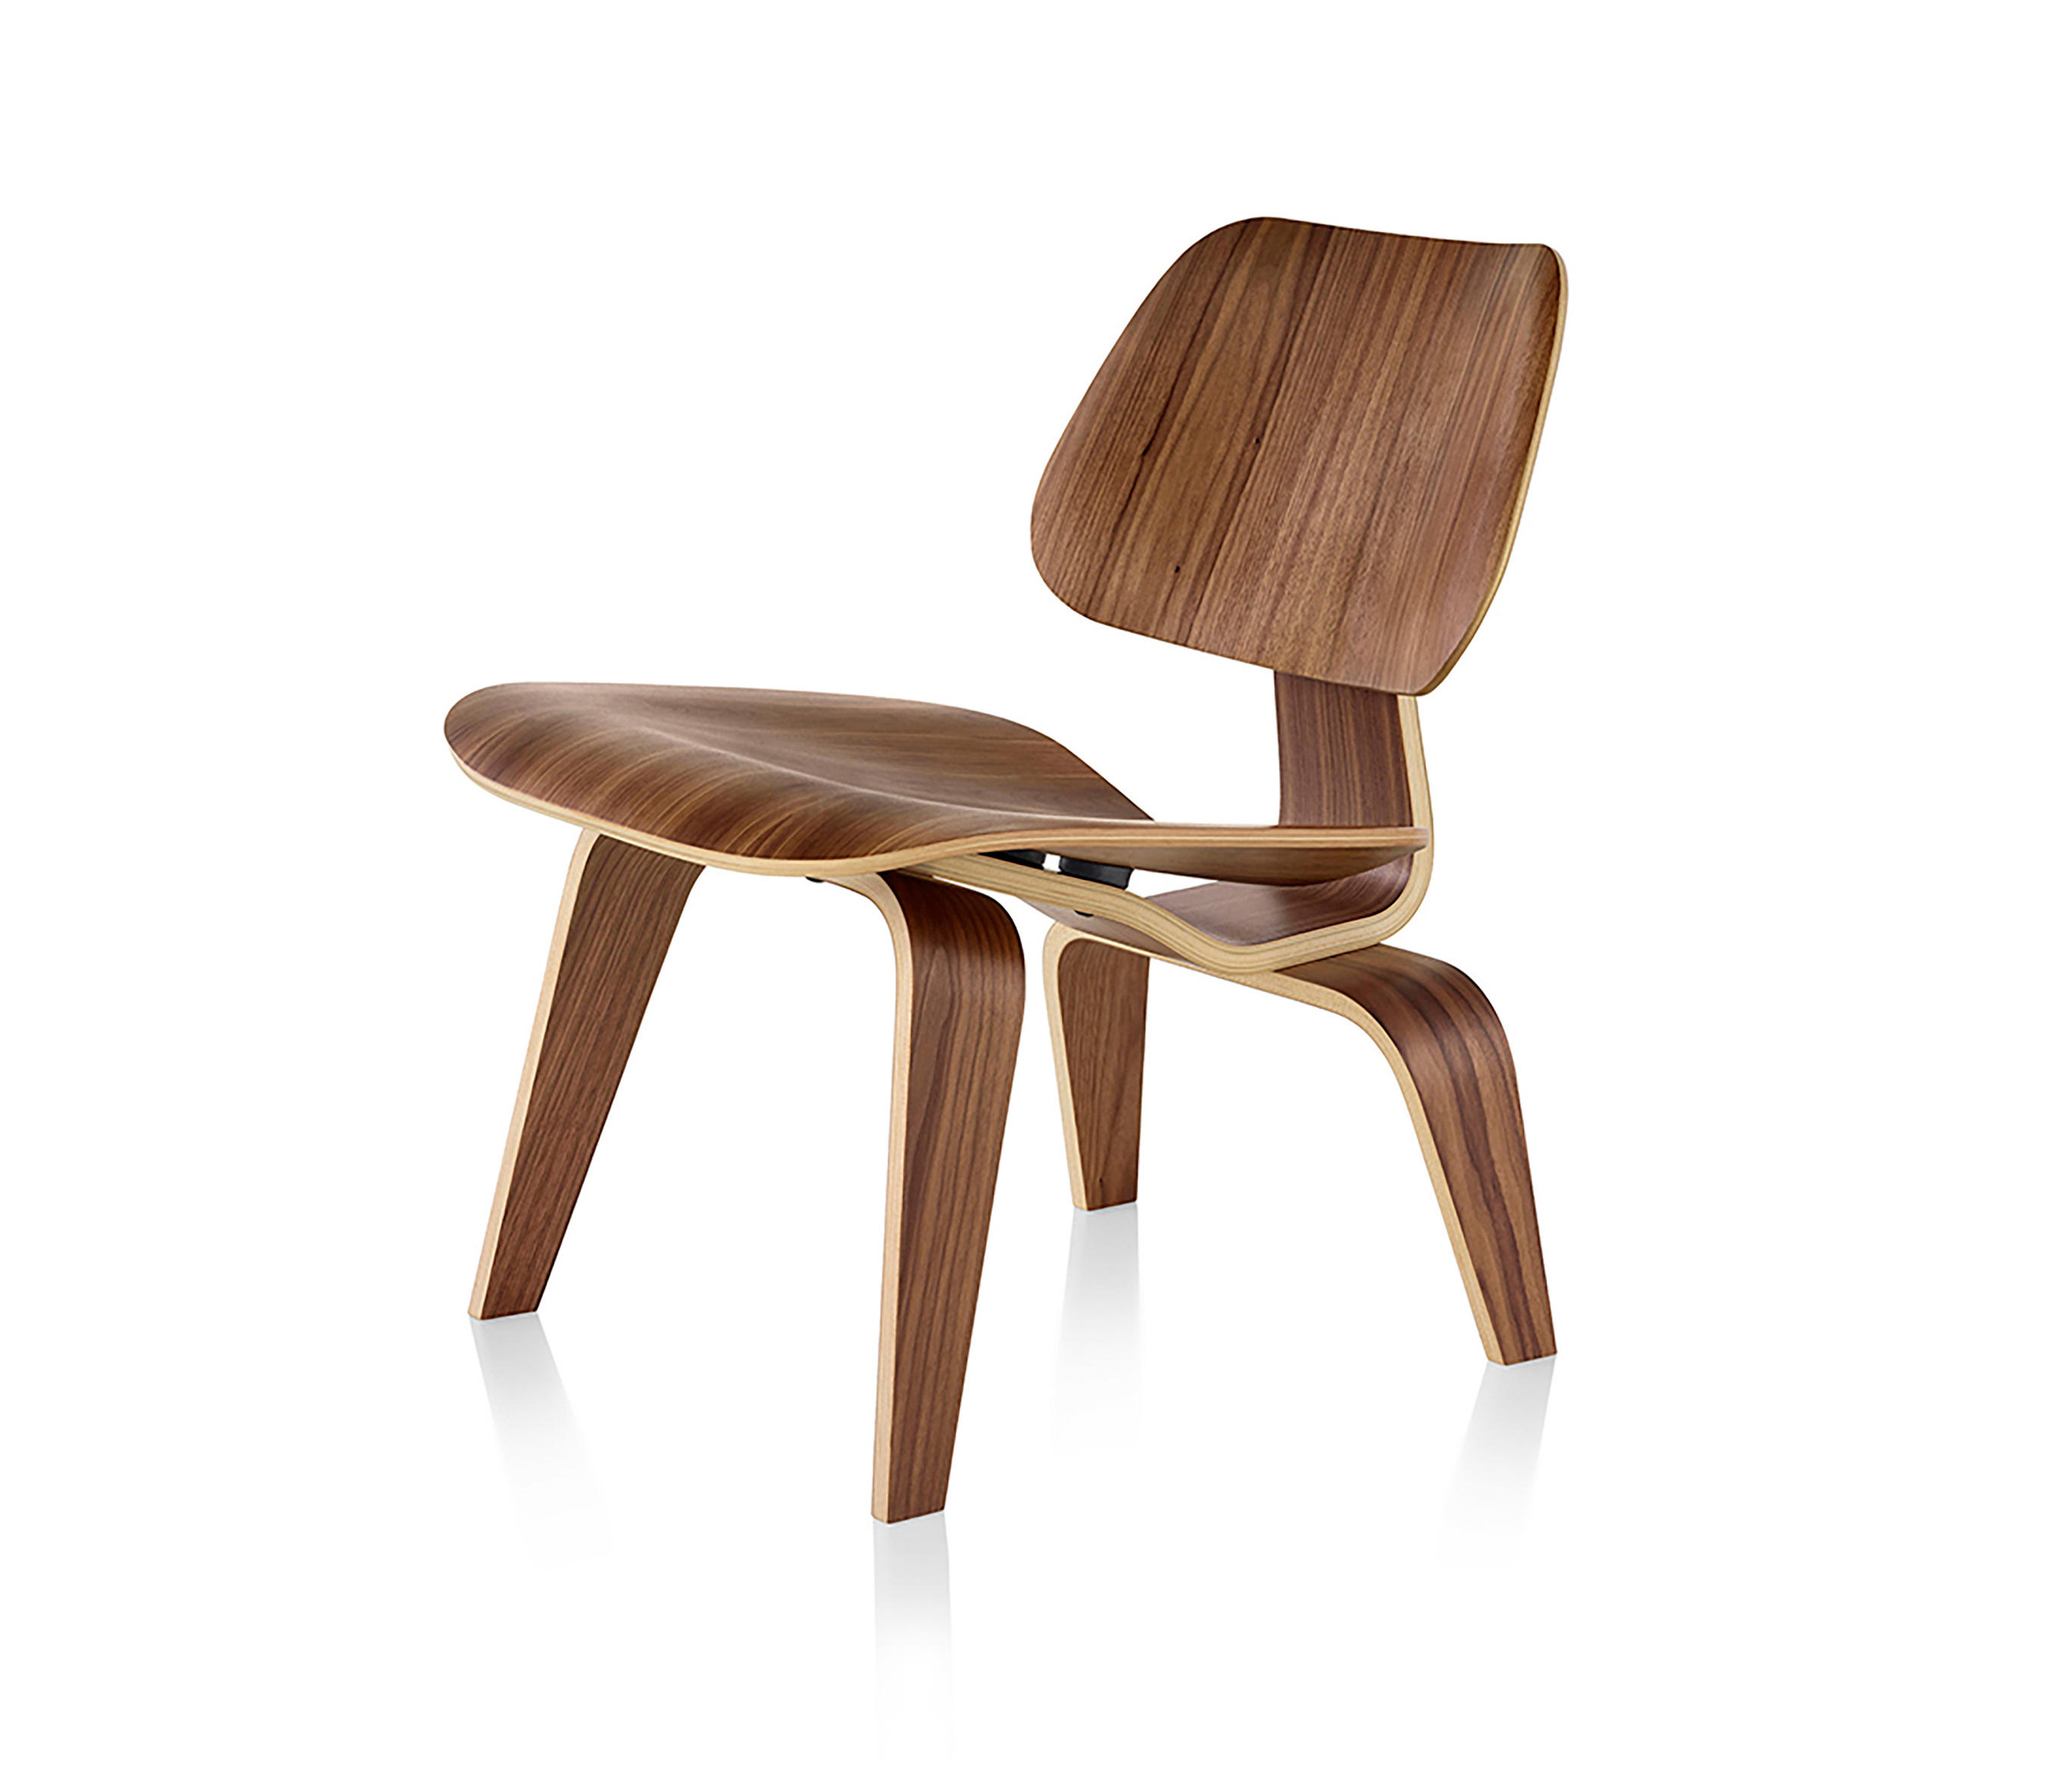 EAMES MOLDED PLYWOOD LOUNGE CHAIR WOOD BASE Lounge chairs from Herman Mille